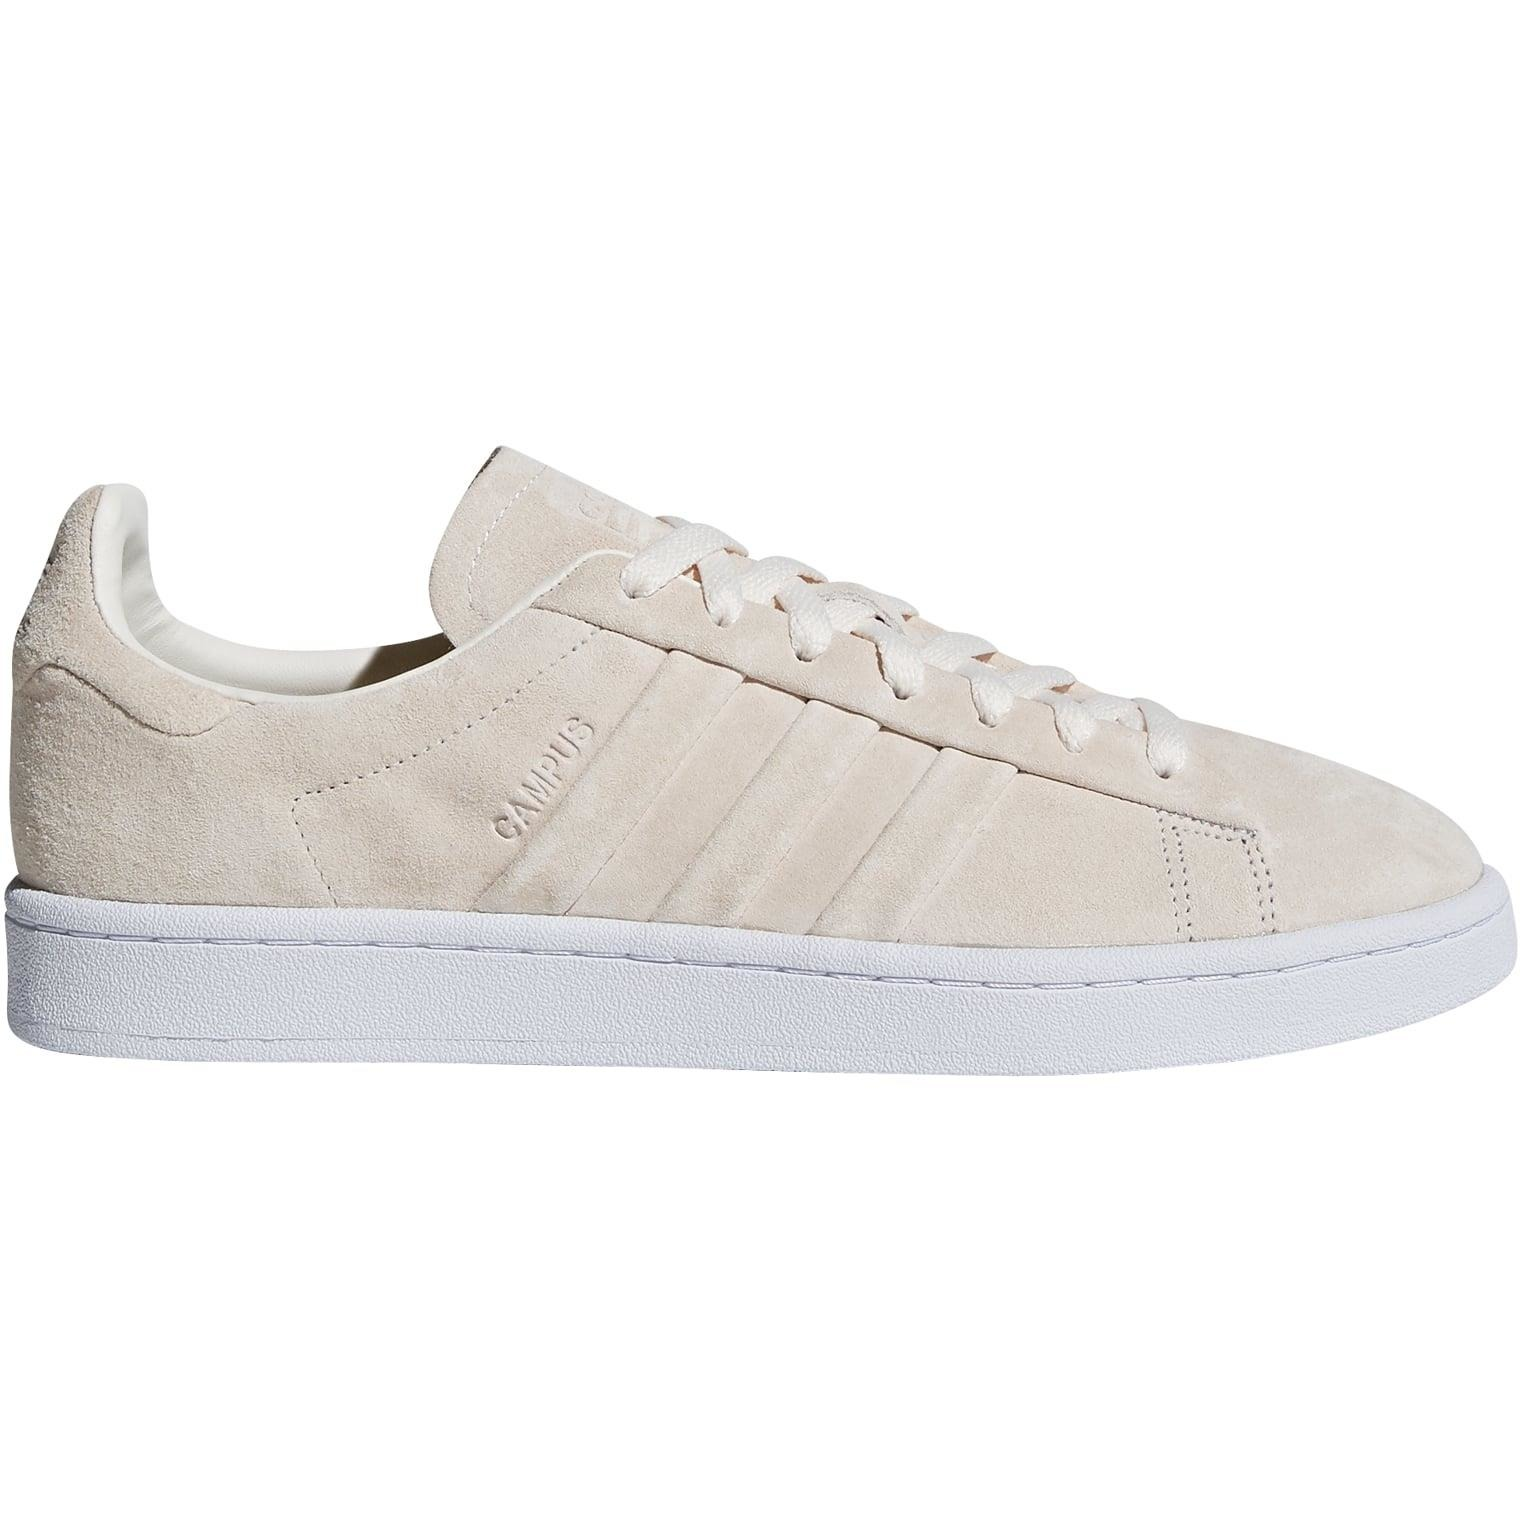 new concept 1c052 a474c BUTY ADIDAS CAMPUS STITCH AND TURN BB6744 r 45 13